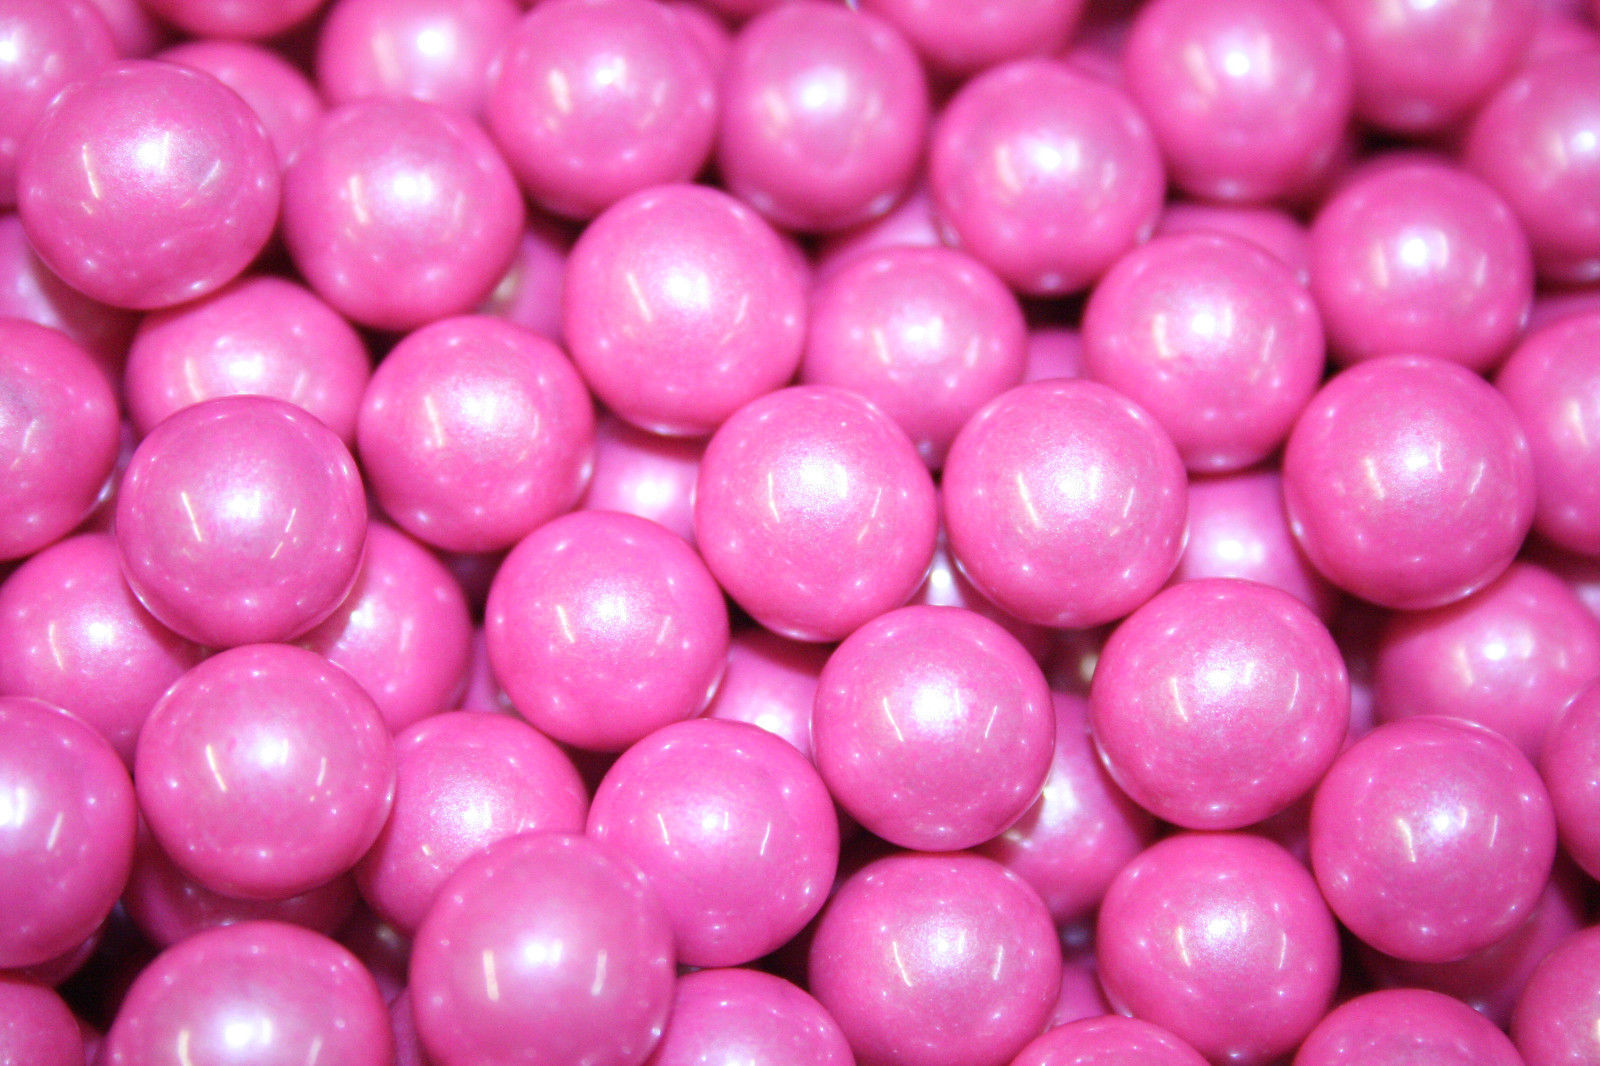 SIXLETS SHIMMER BRIGHT PINK, 2LBS